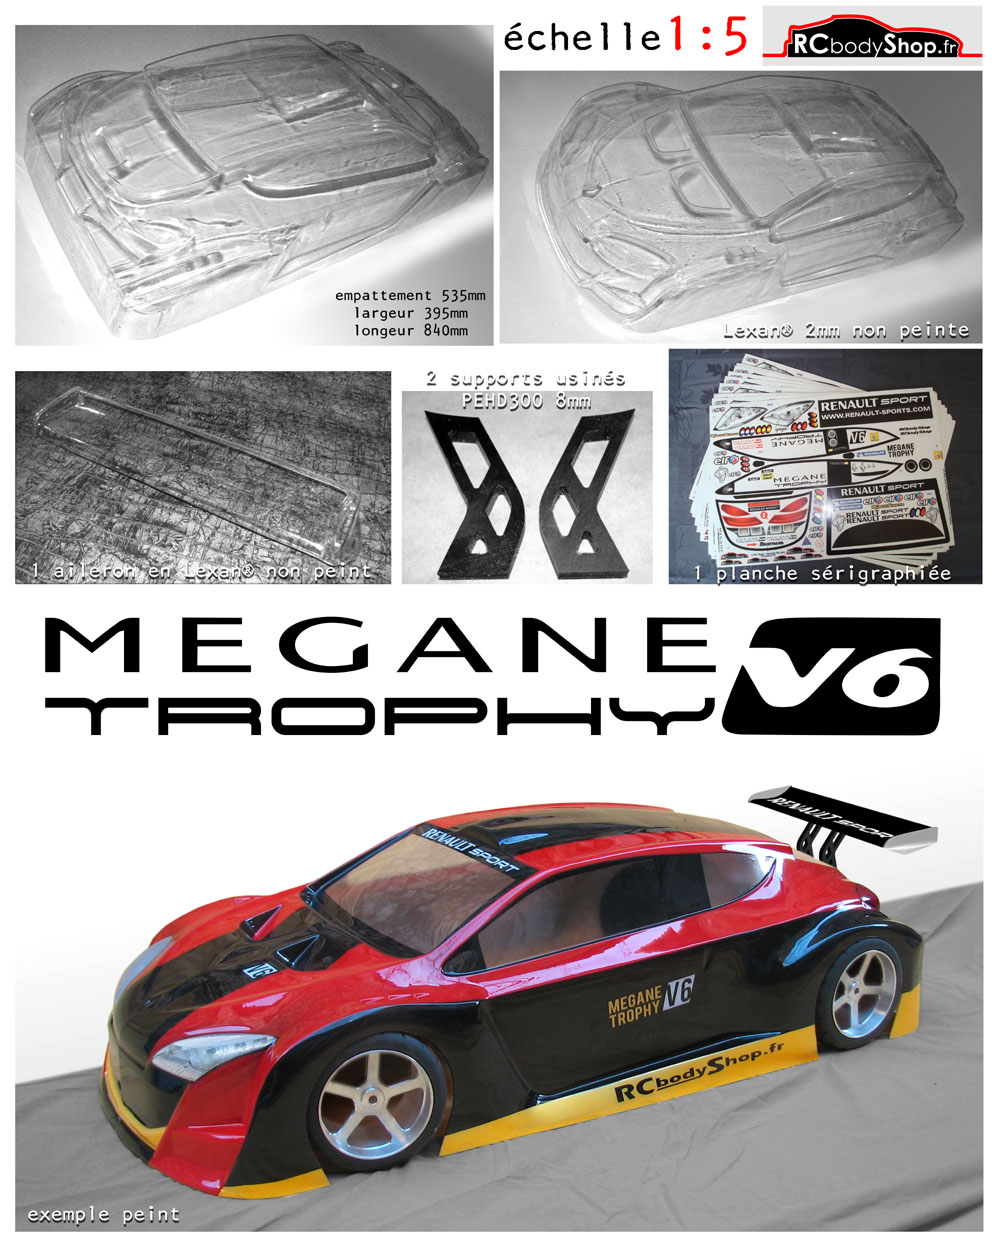 rcbodyshop_megane_trophy_resume1000